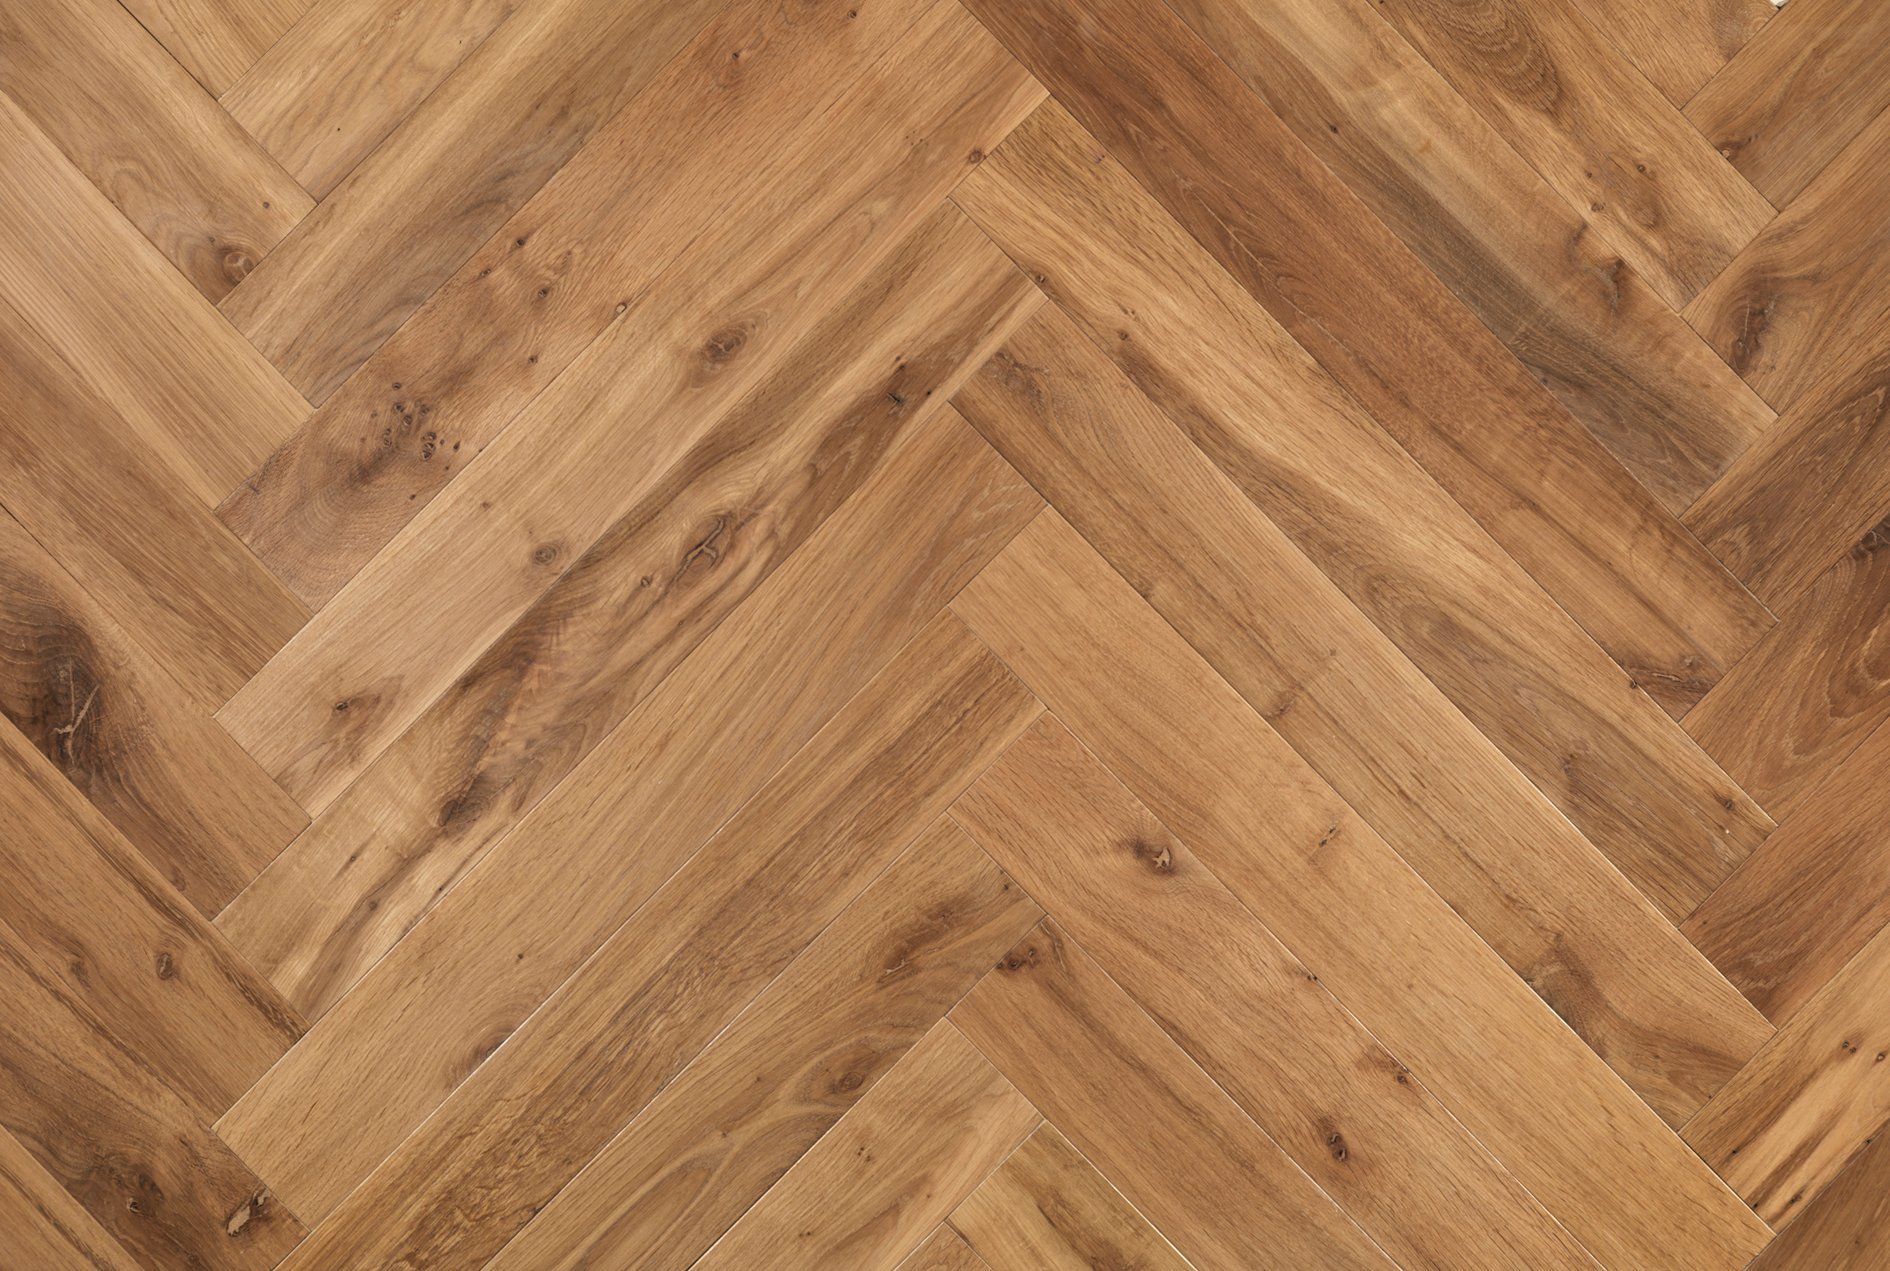 Reclaimed wood parquet old wood by devon devon for Parquet hardwood flooring